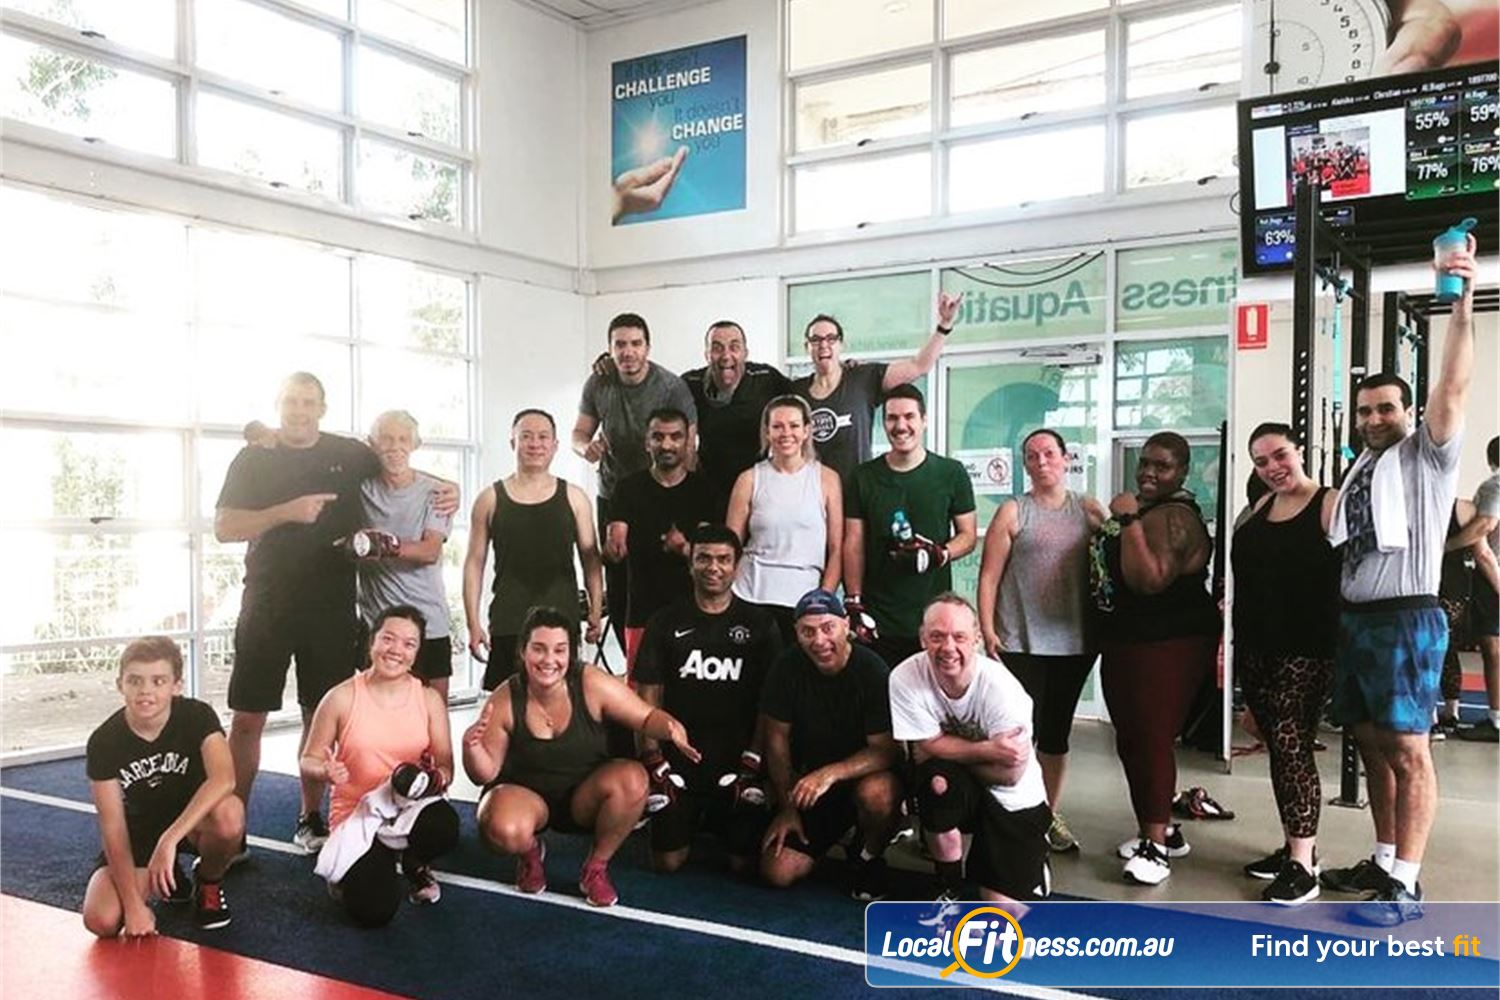 North Ryde Fitness & Aquatic North Ryde Try our own style of North Ryde HIIT classes.